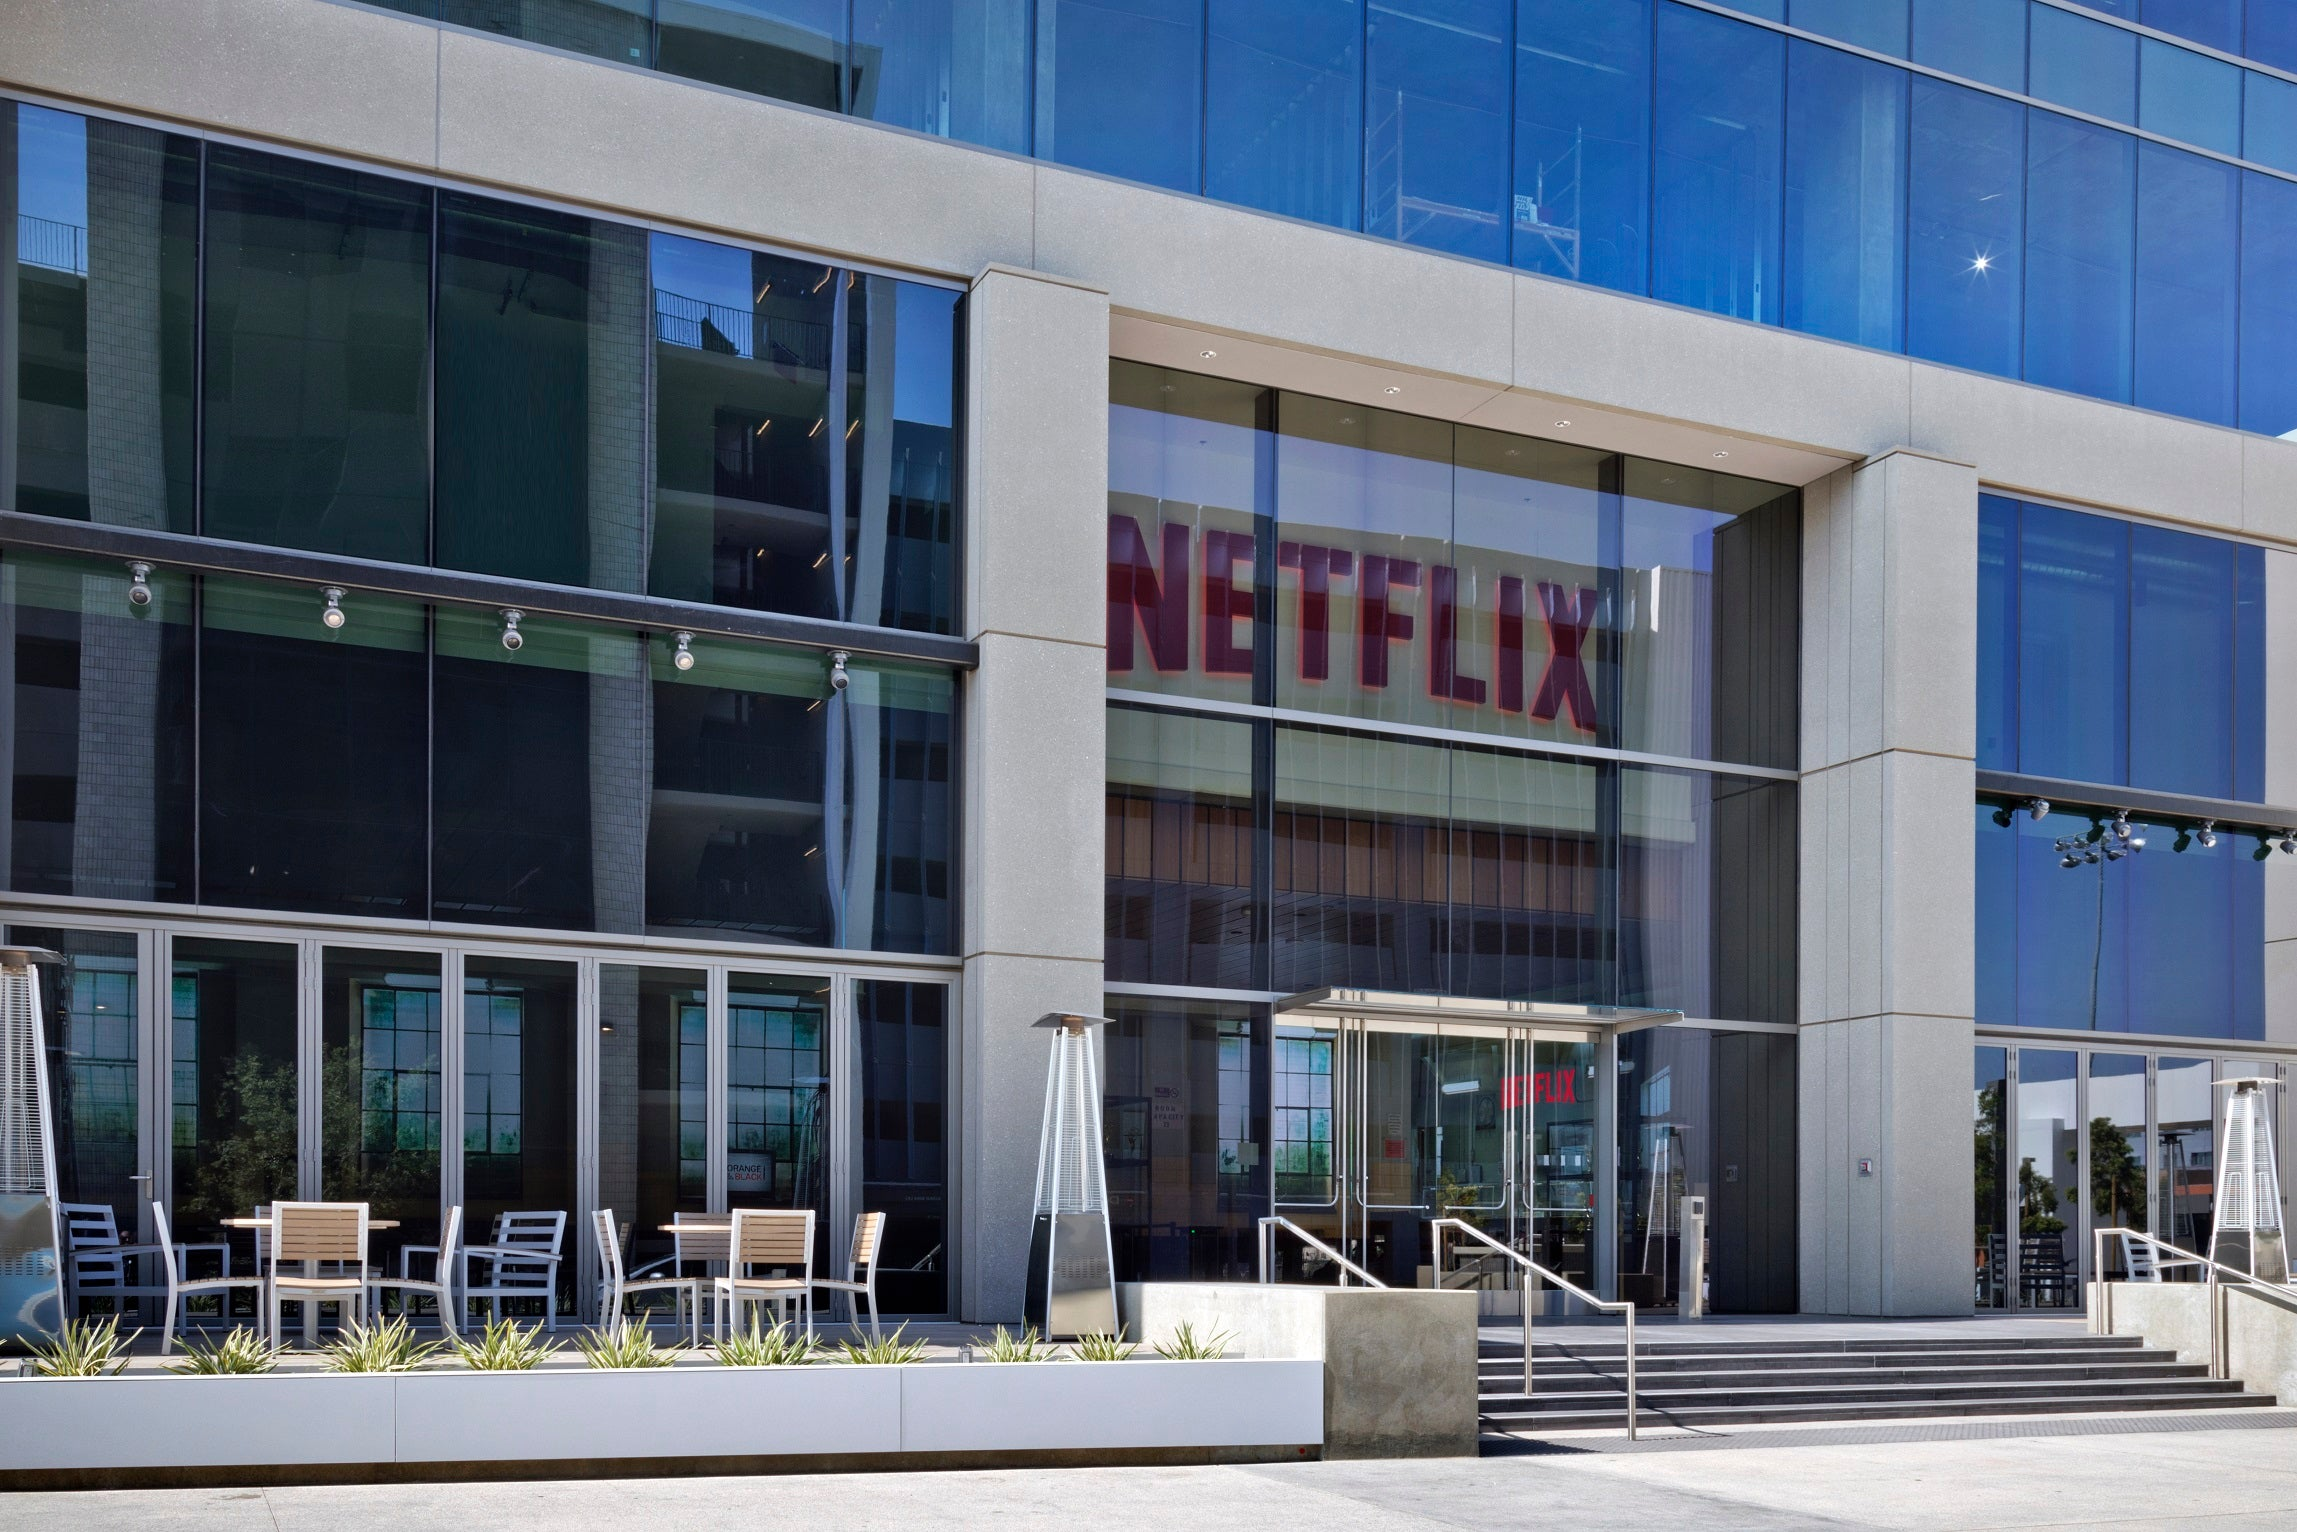 Stock Markets Sink, but Will Netflix Make Wednesday Even Worse?